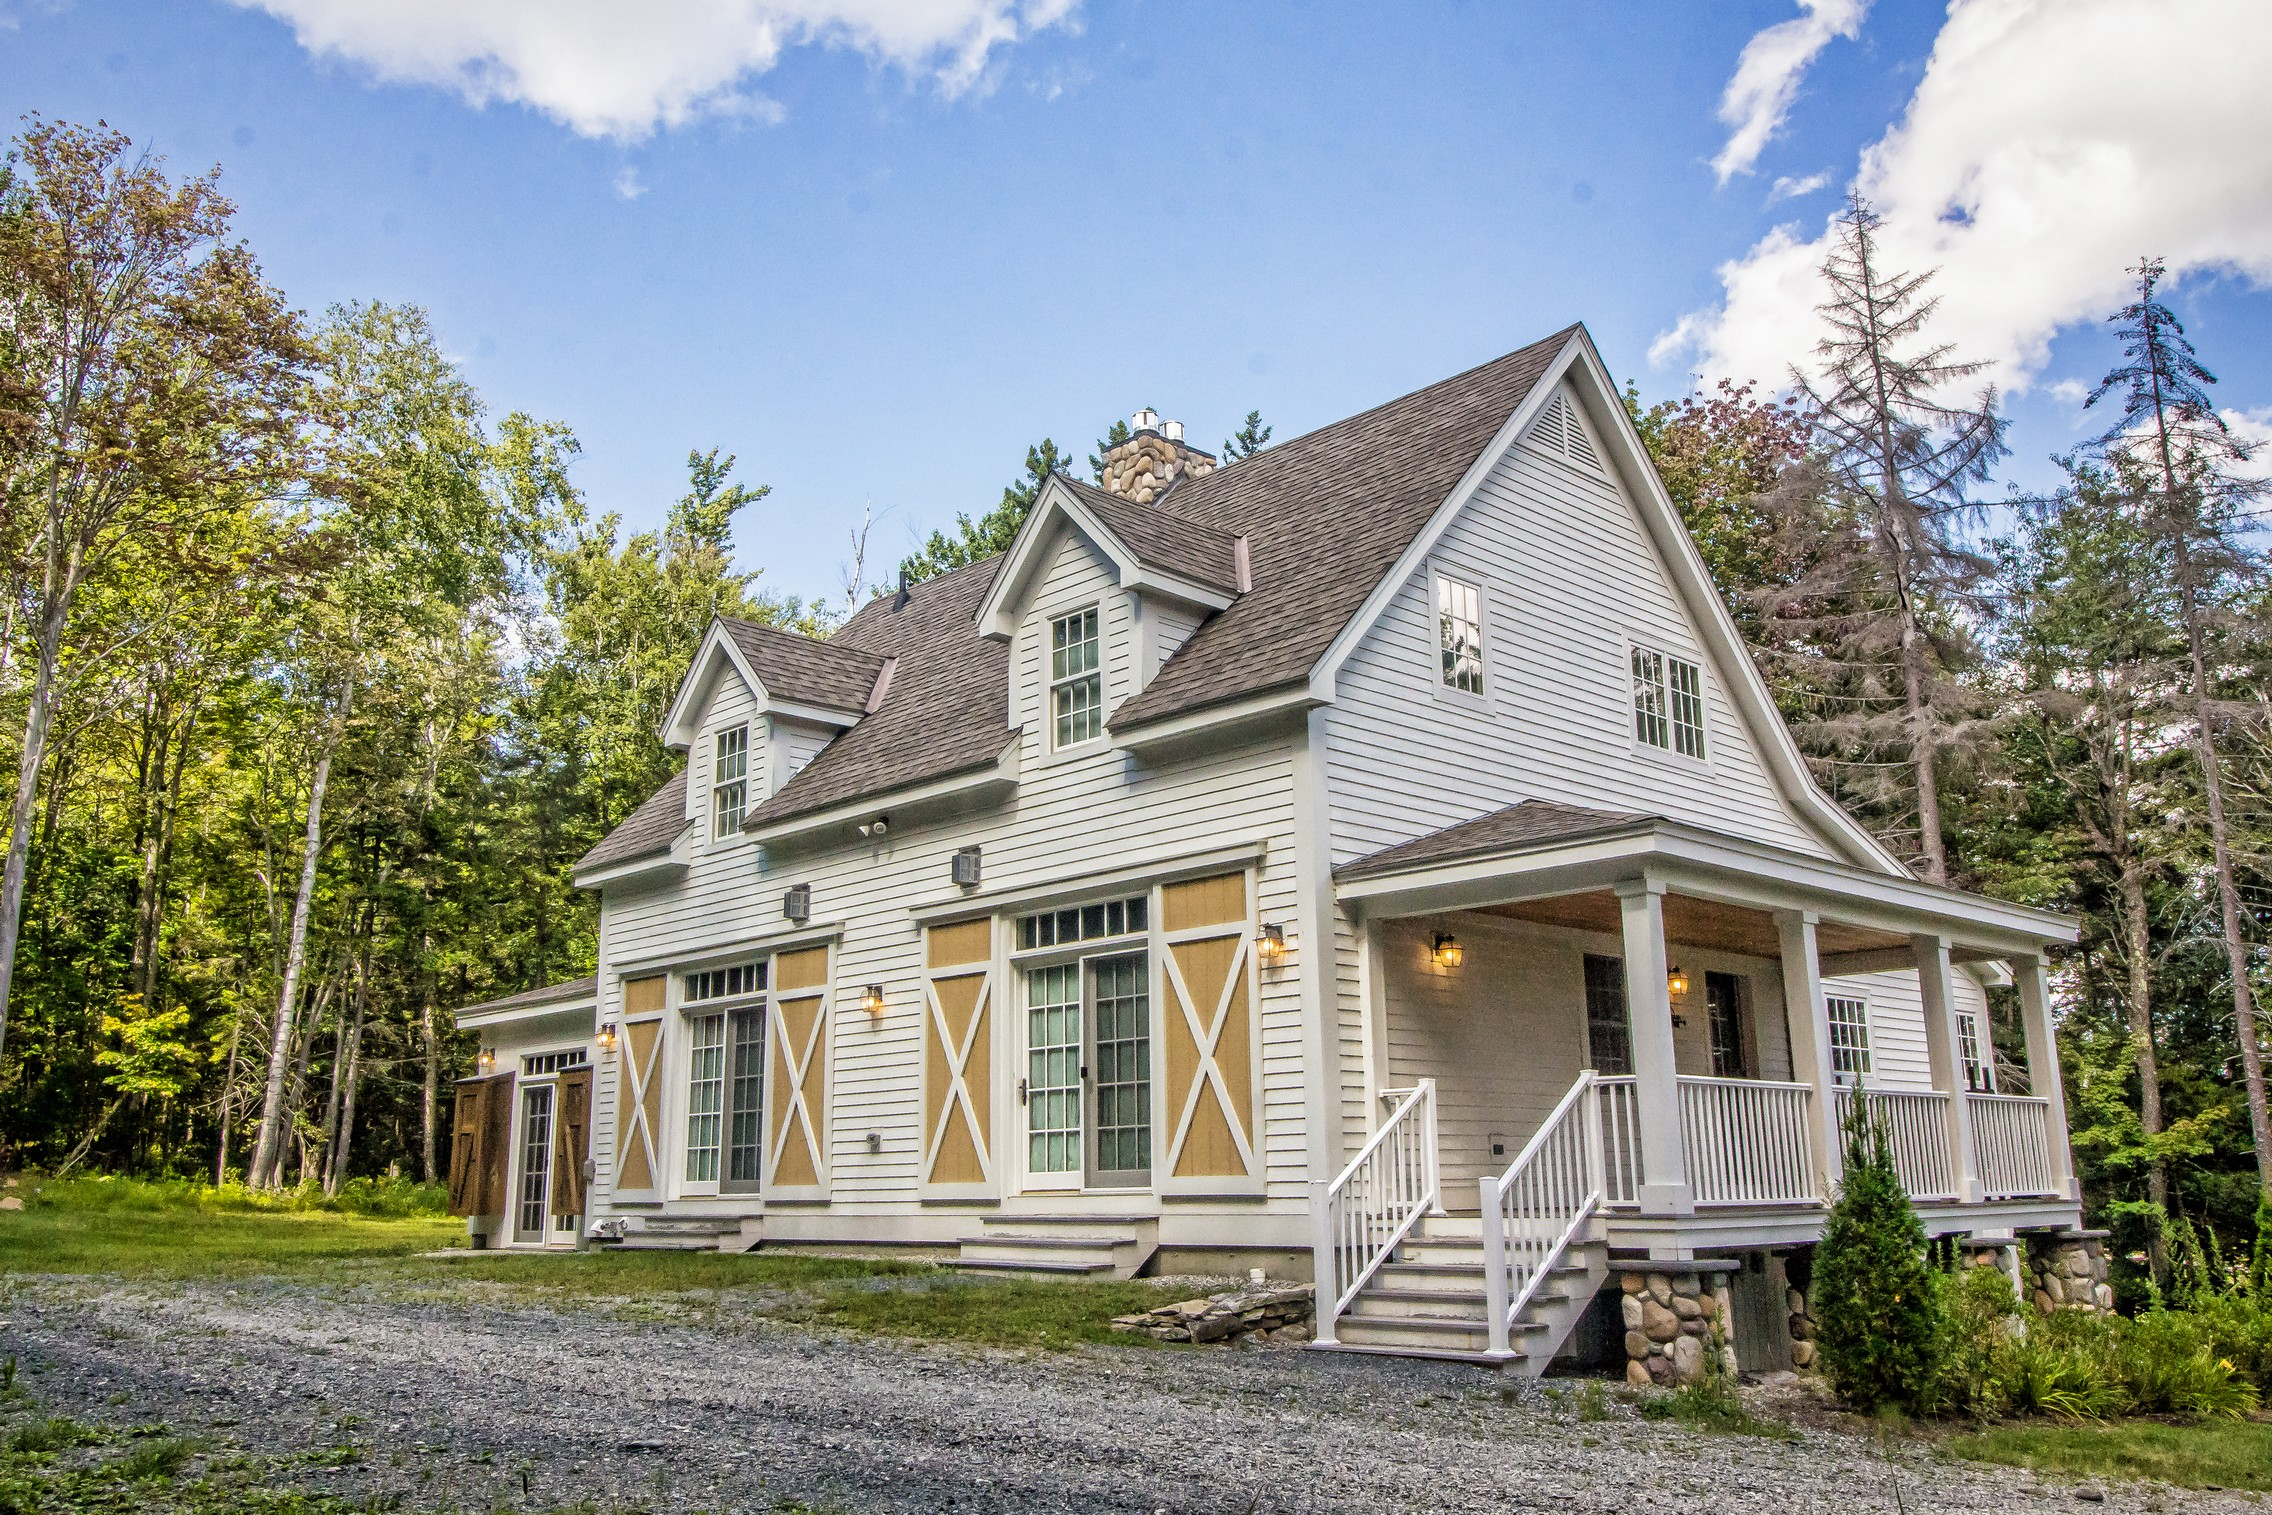 Single Family Home for Sale at Carriage House at Hermitage Inn 20 Carriage House Ln Dover, Vermont, 05360 United States